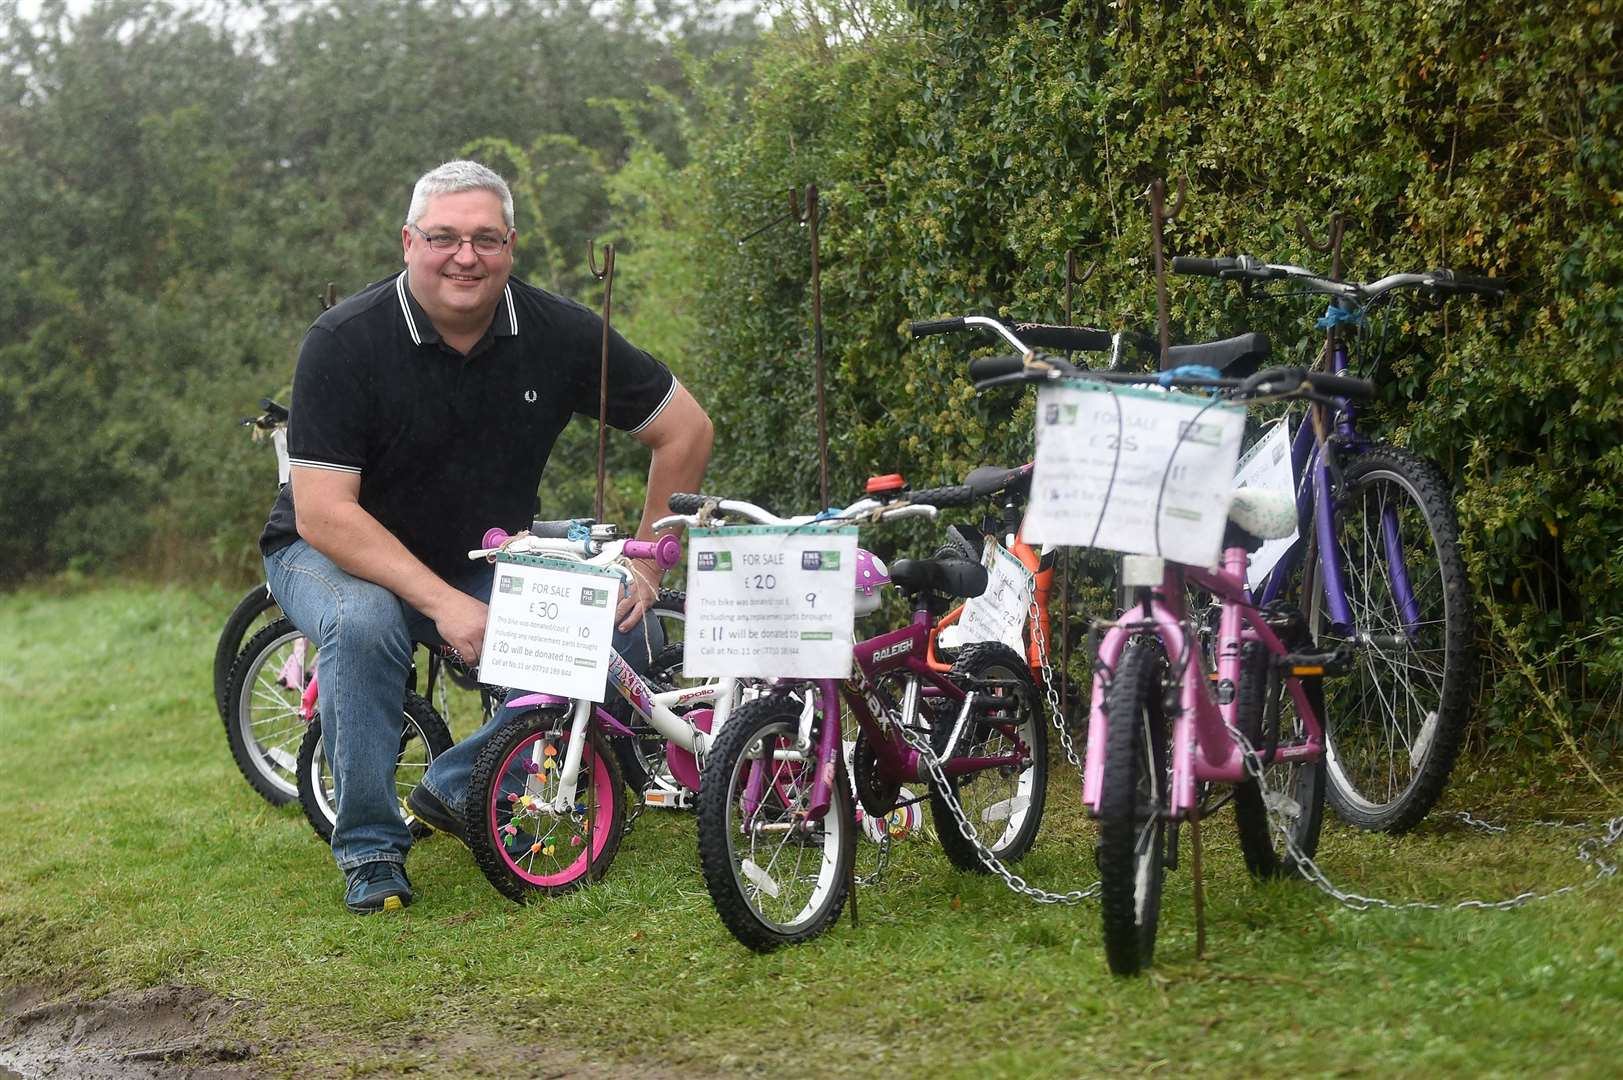 Andy Curtis is donating profits from fixing and selling bikes to raise money for the Samaritans. Picture by Mecha Morton